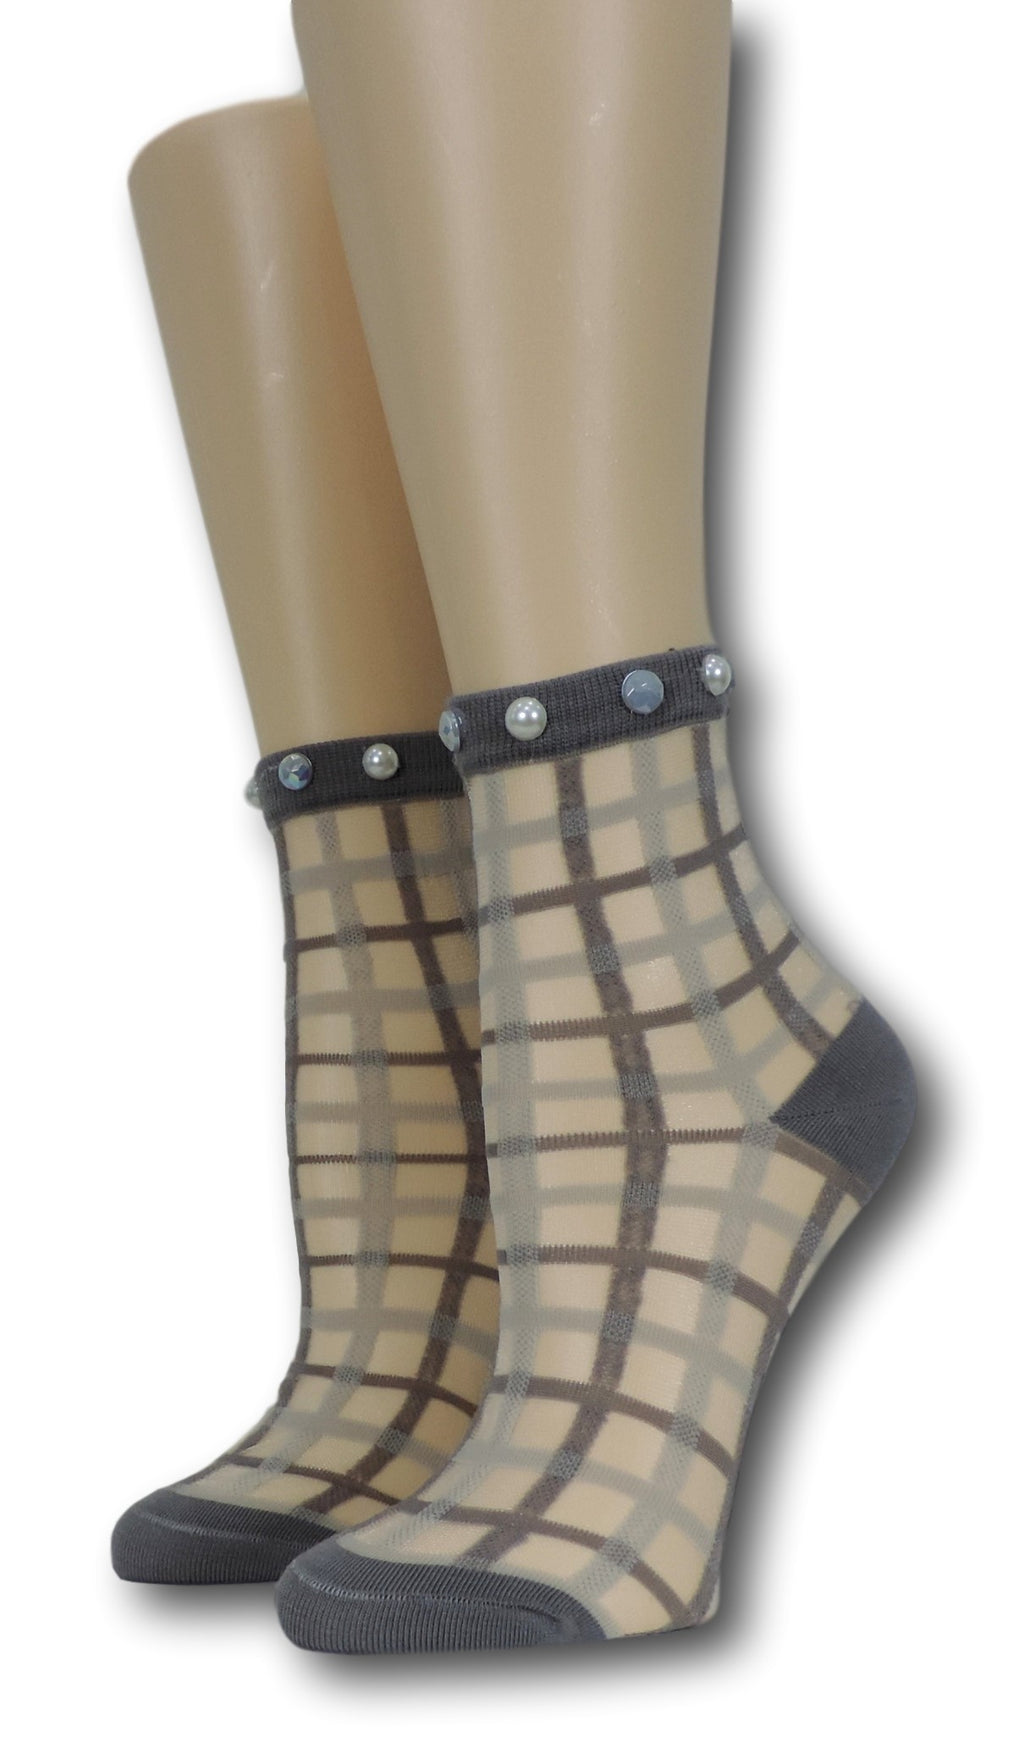 Grey Vintage Sheer Socks with beads